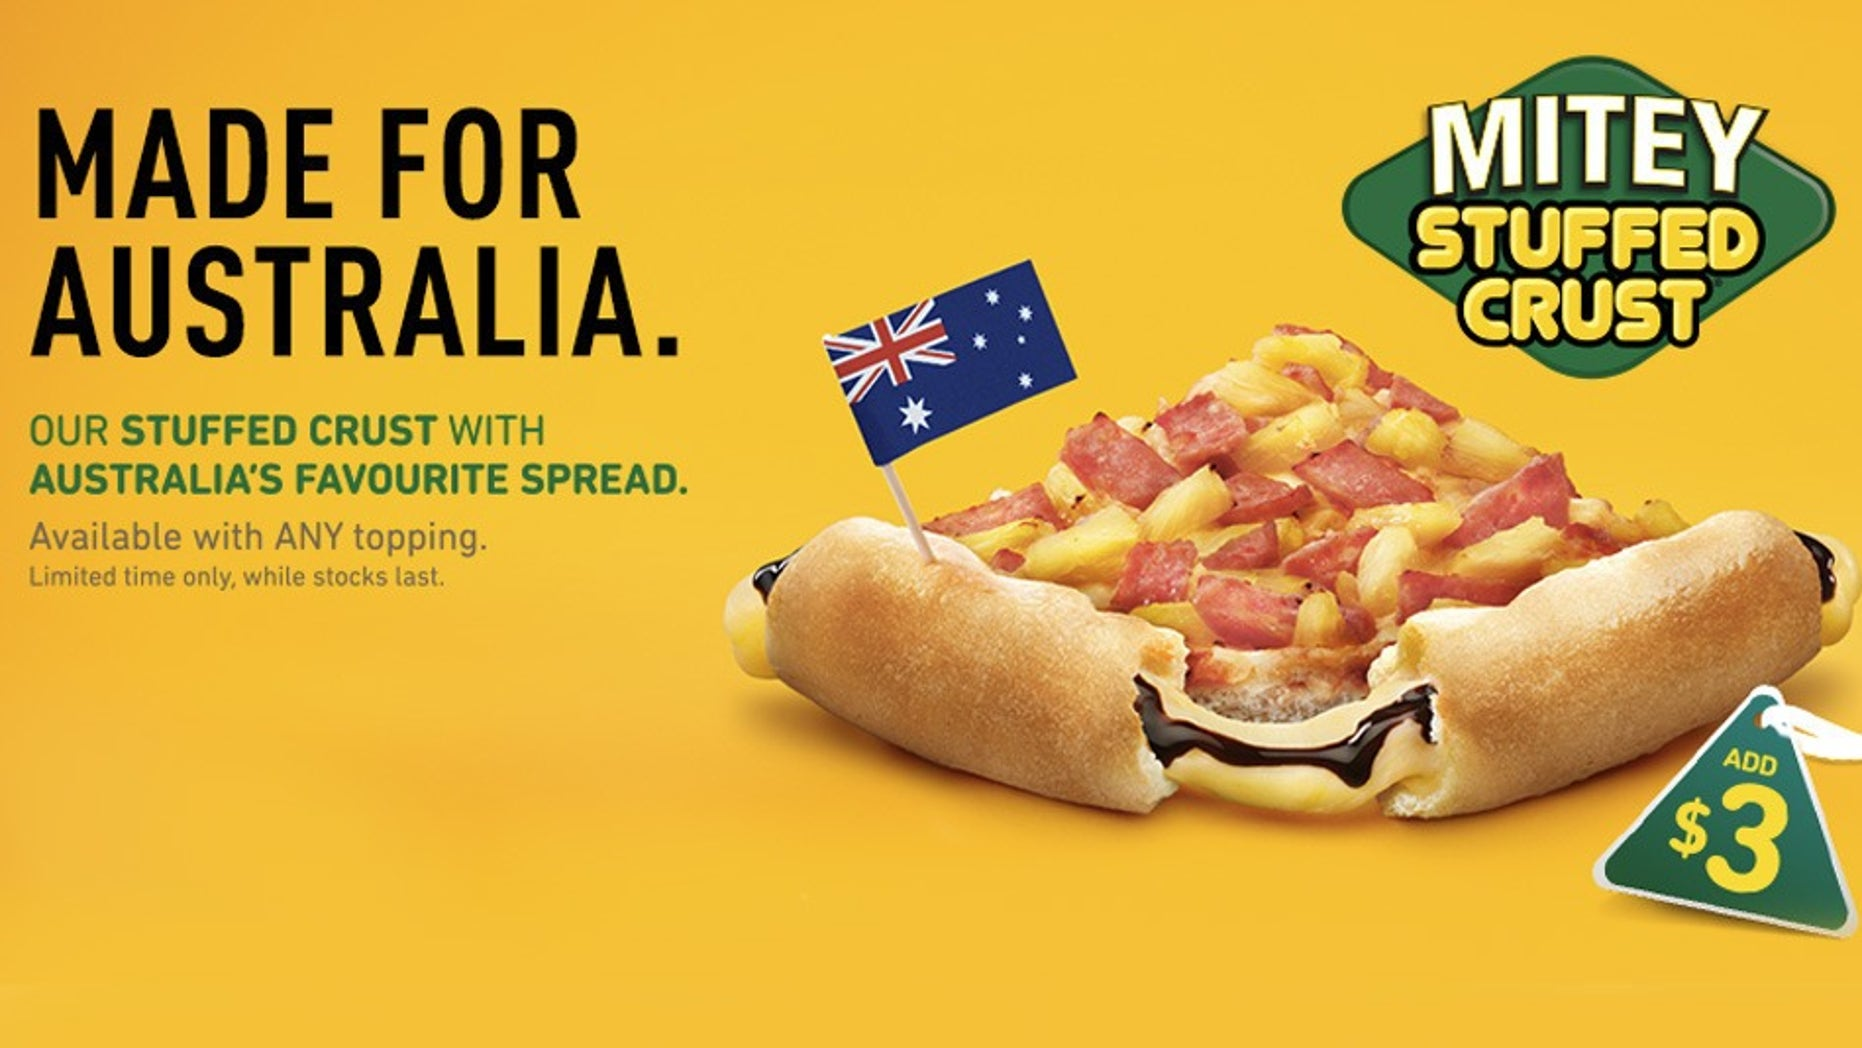 The new Vegemite stuffed crust is available for a limited time only.